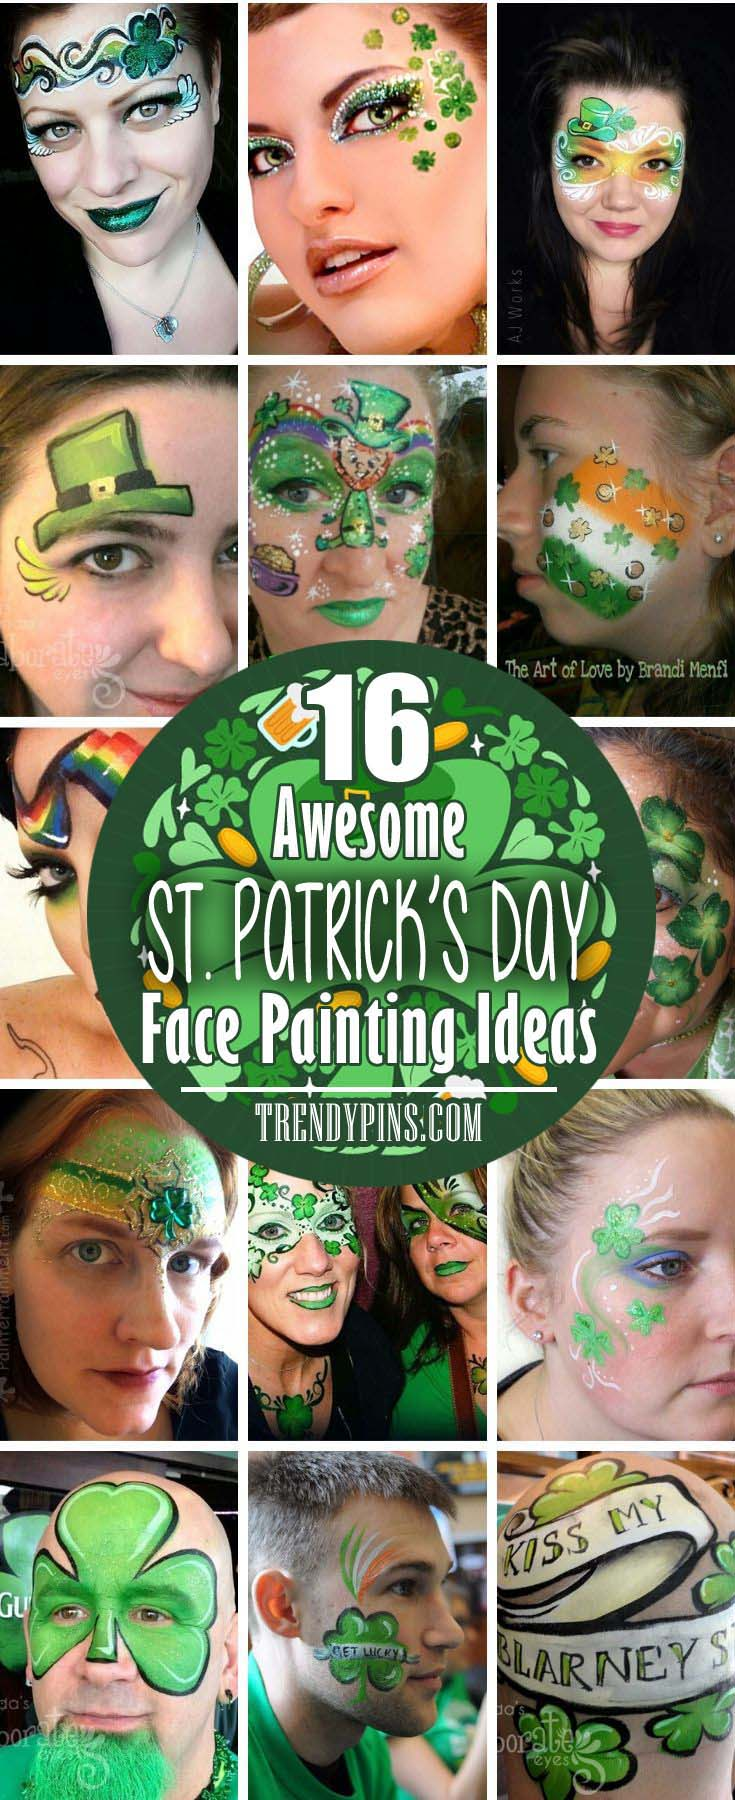 Face painting is one of the most artistic ways to express your personality and it is the most influential way.Here are some awesome ideas of unique St. Patrick`s day face painting. #St. Patrick's Day face painting #beauty #trendypins